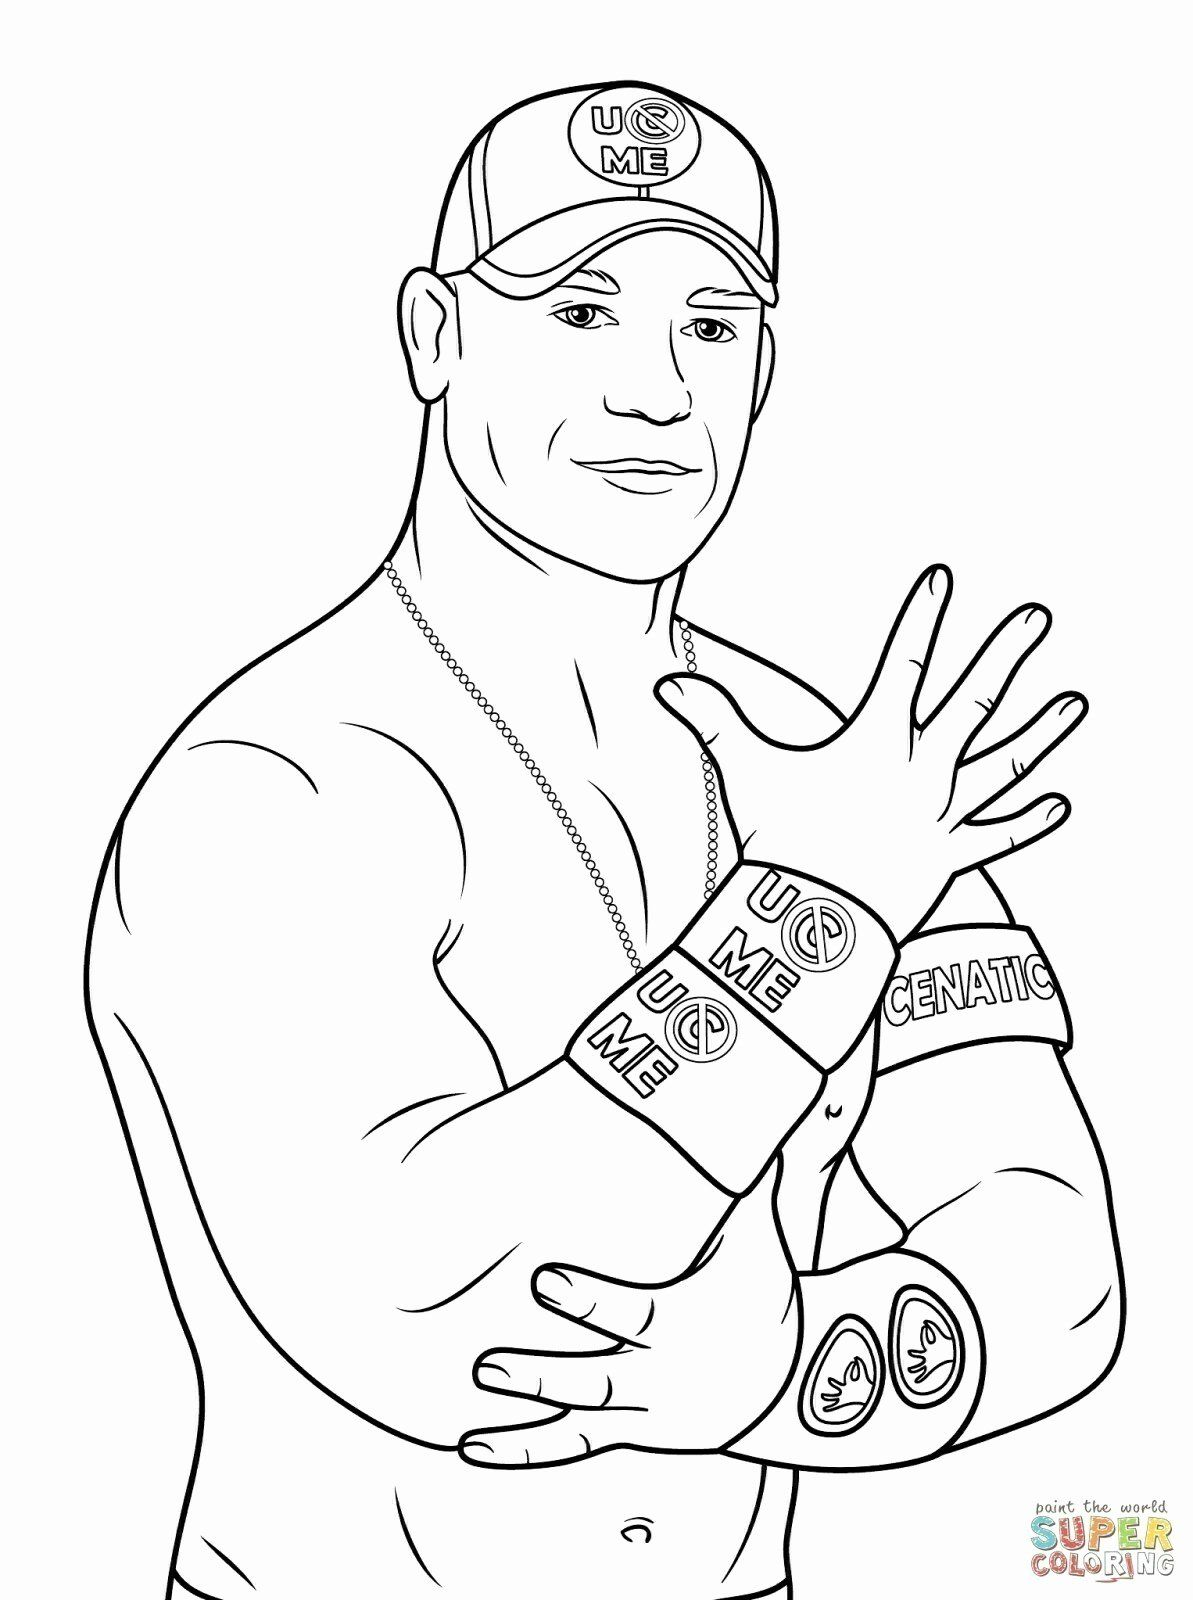 John Cena Coloring Pages Sketch Template Wwe Coloring Pages